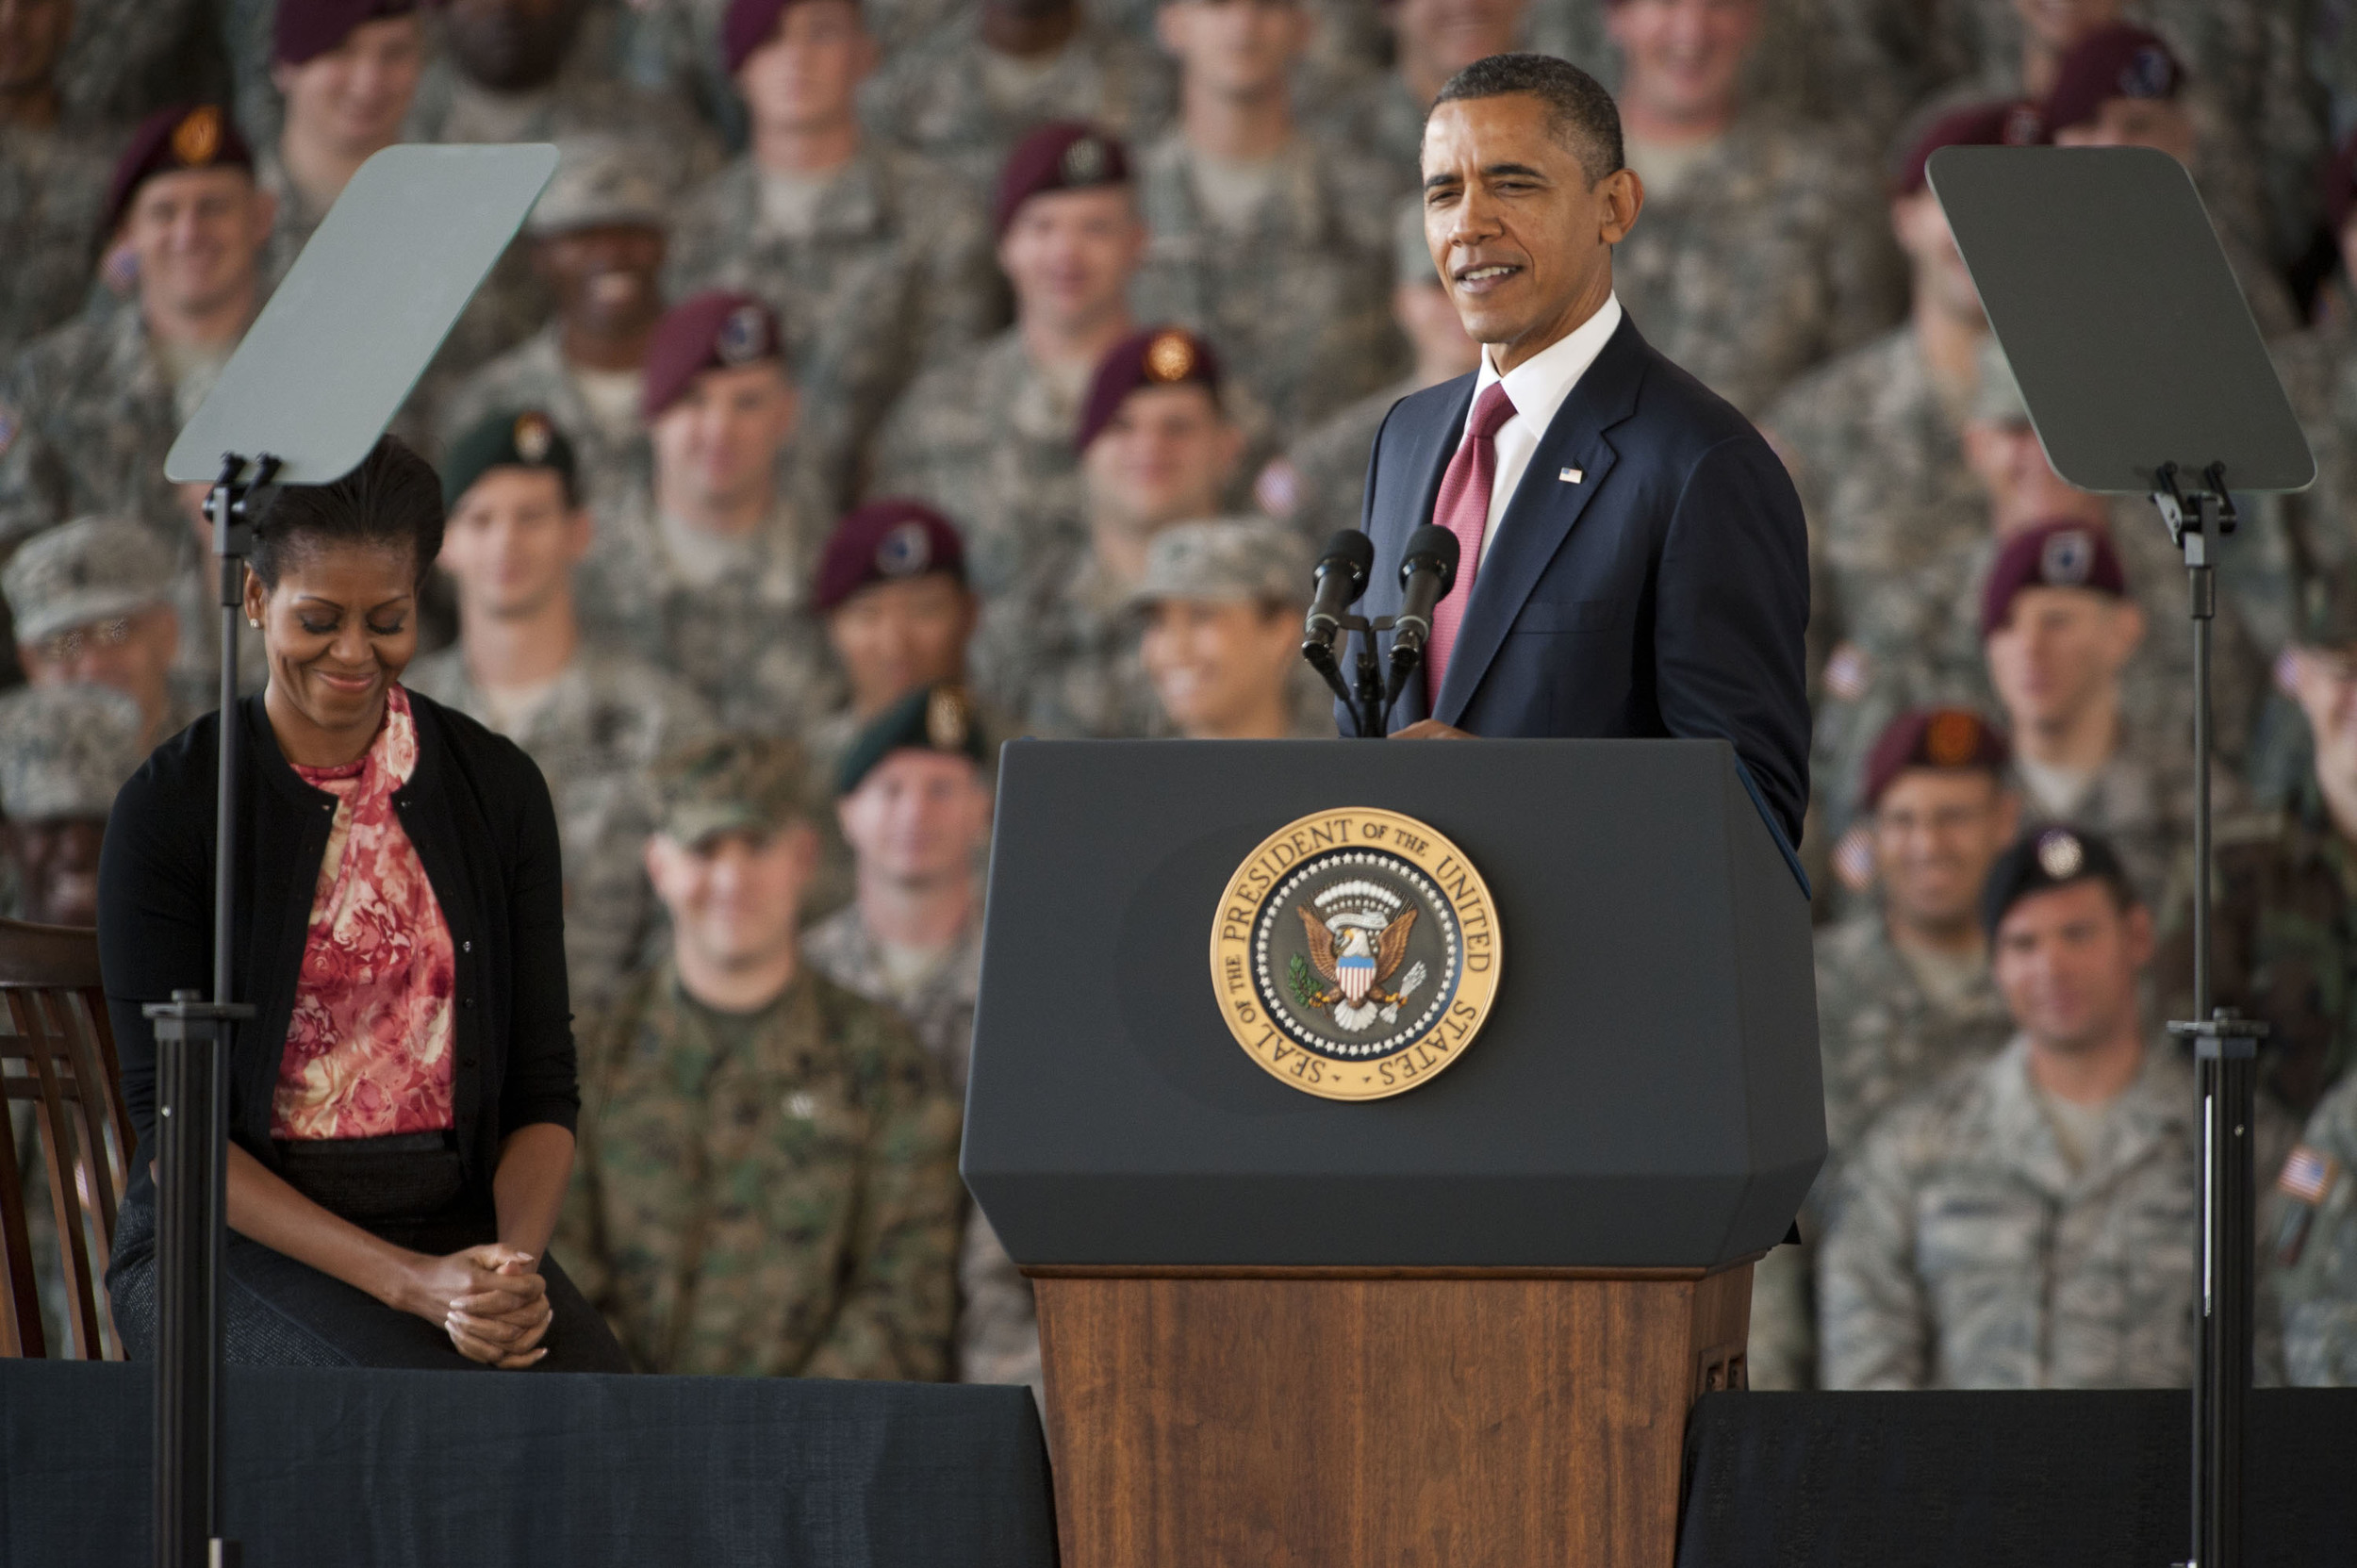 president-obama-speaks-to-troops-returning-home-from-iraq-at-fort-bragg-1